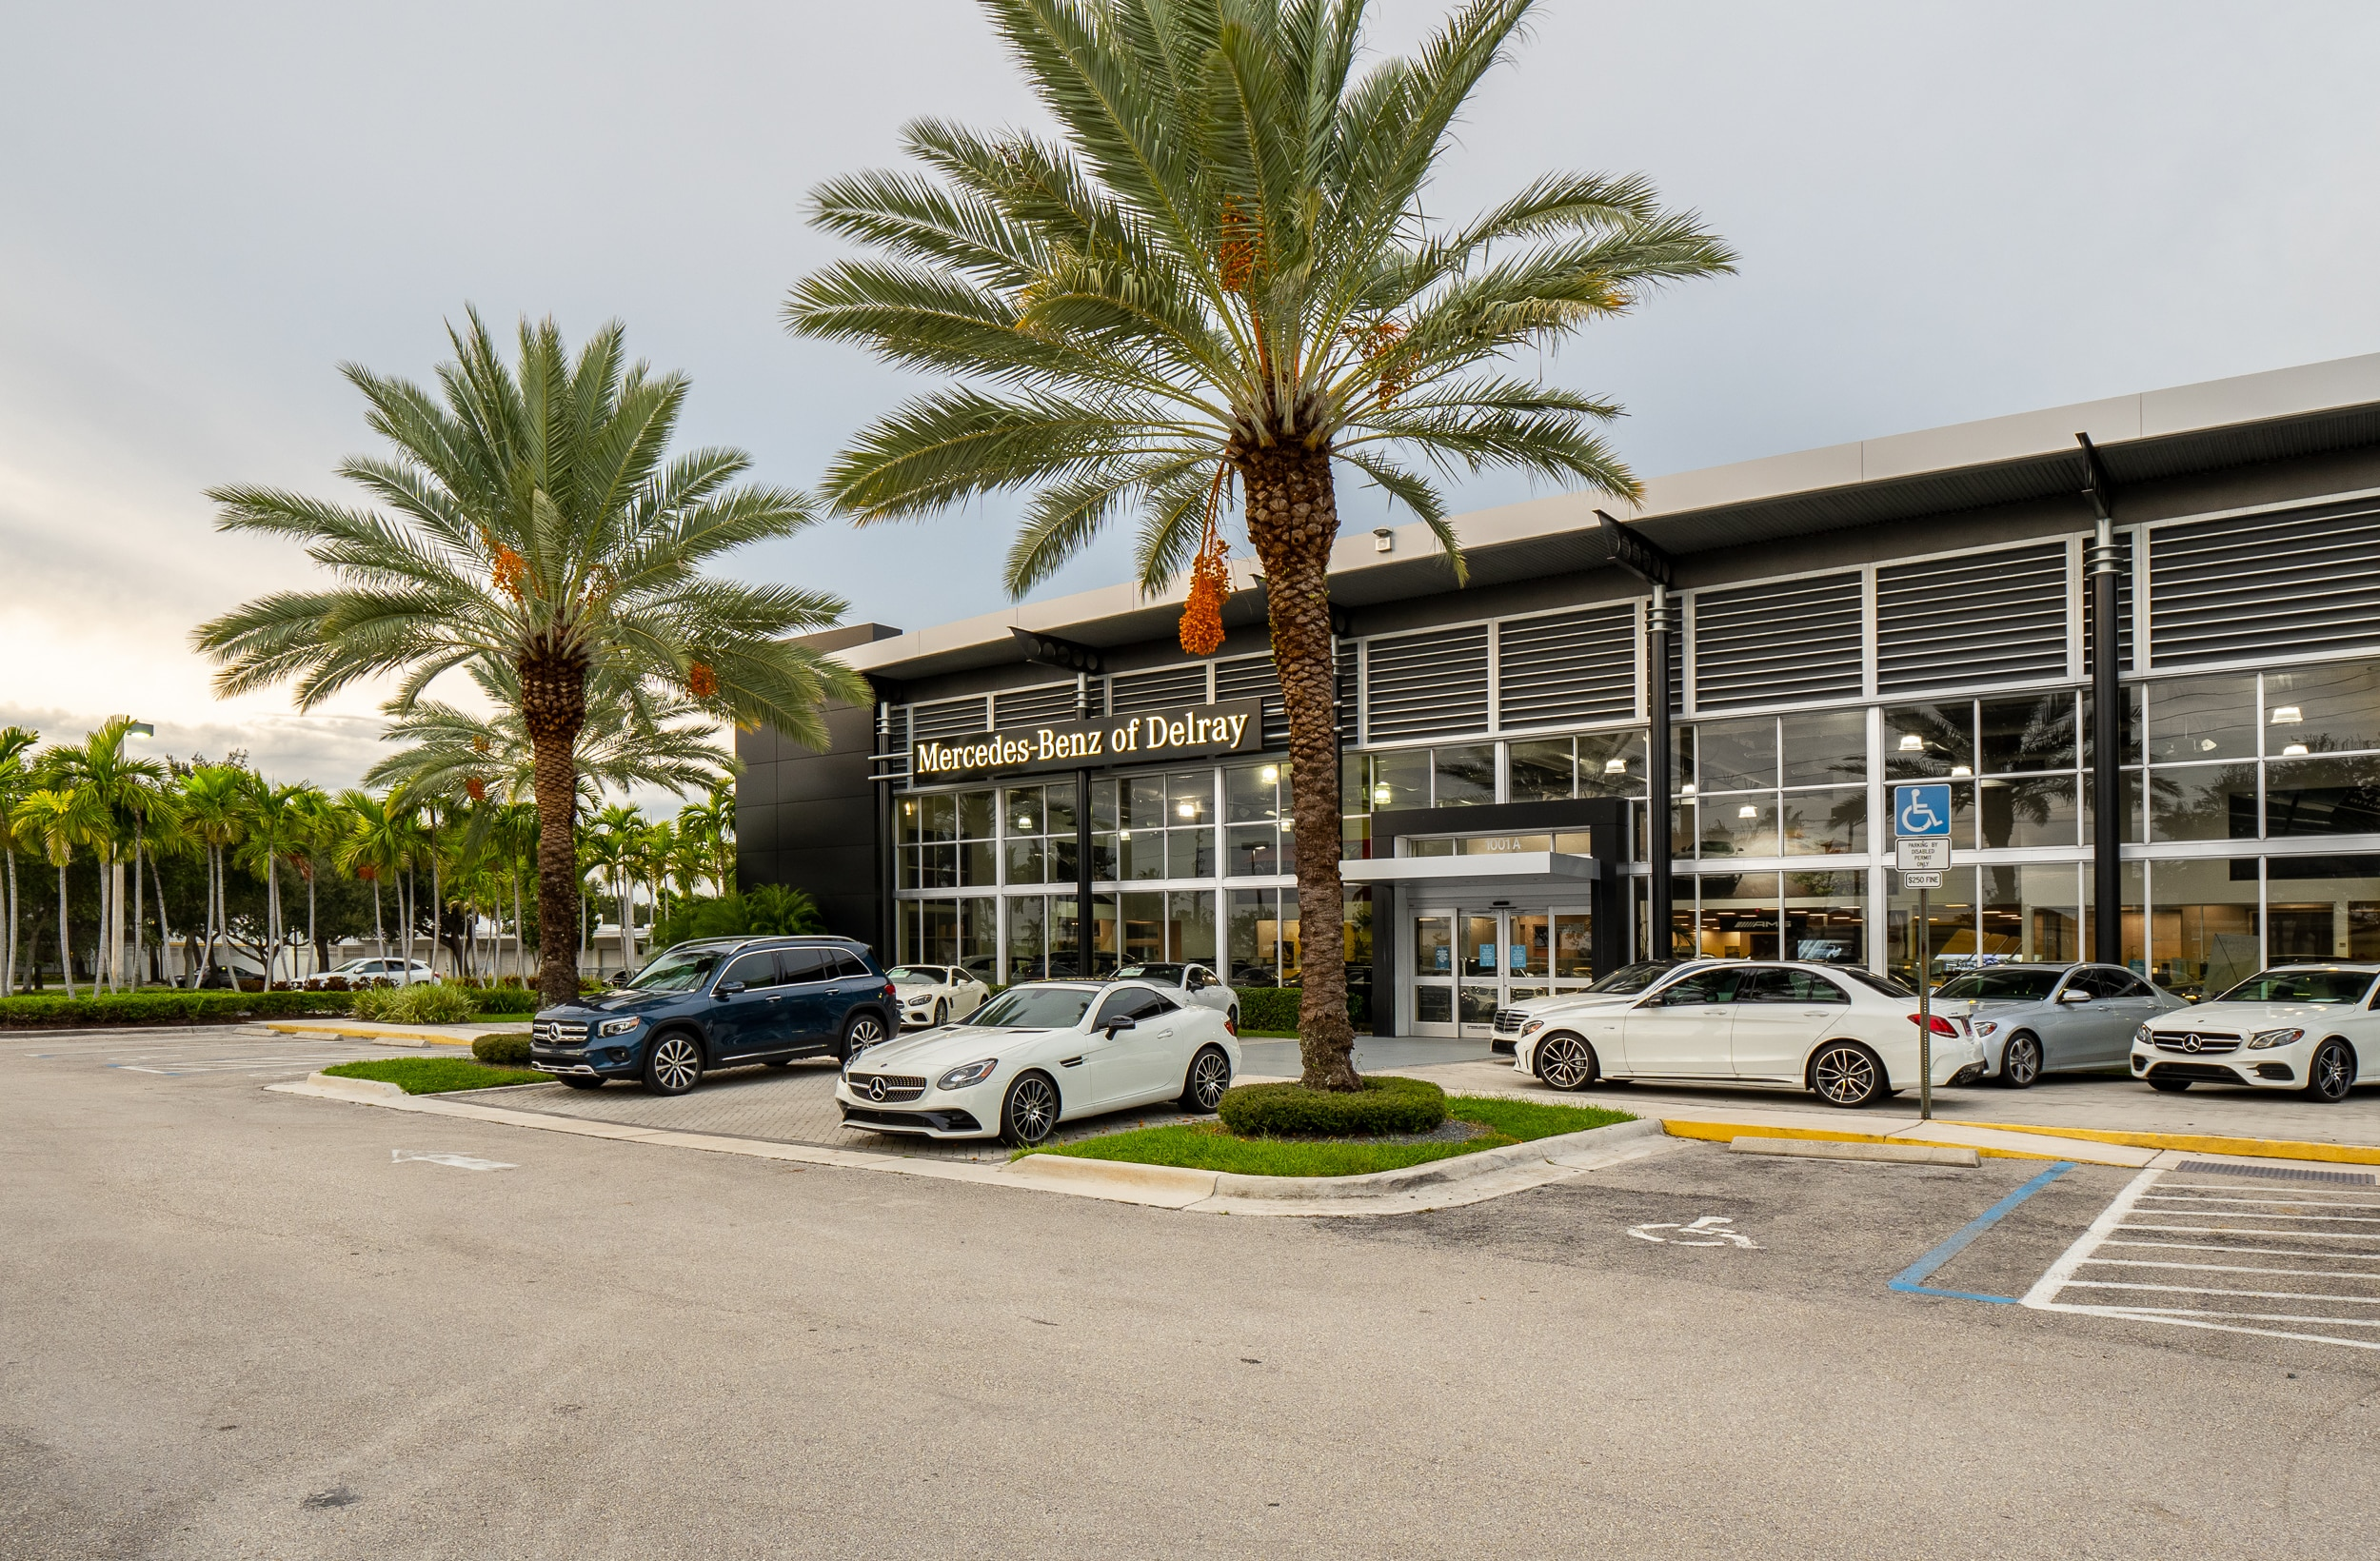 Mercedes-Benz of Delray offers Mercedes-Benz sales, service, and parts in Delray Beach